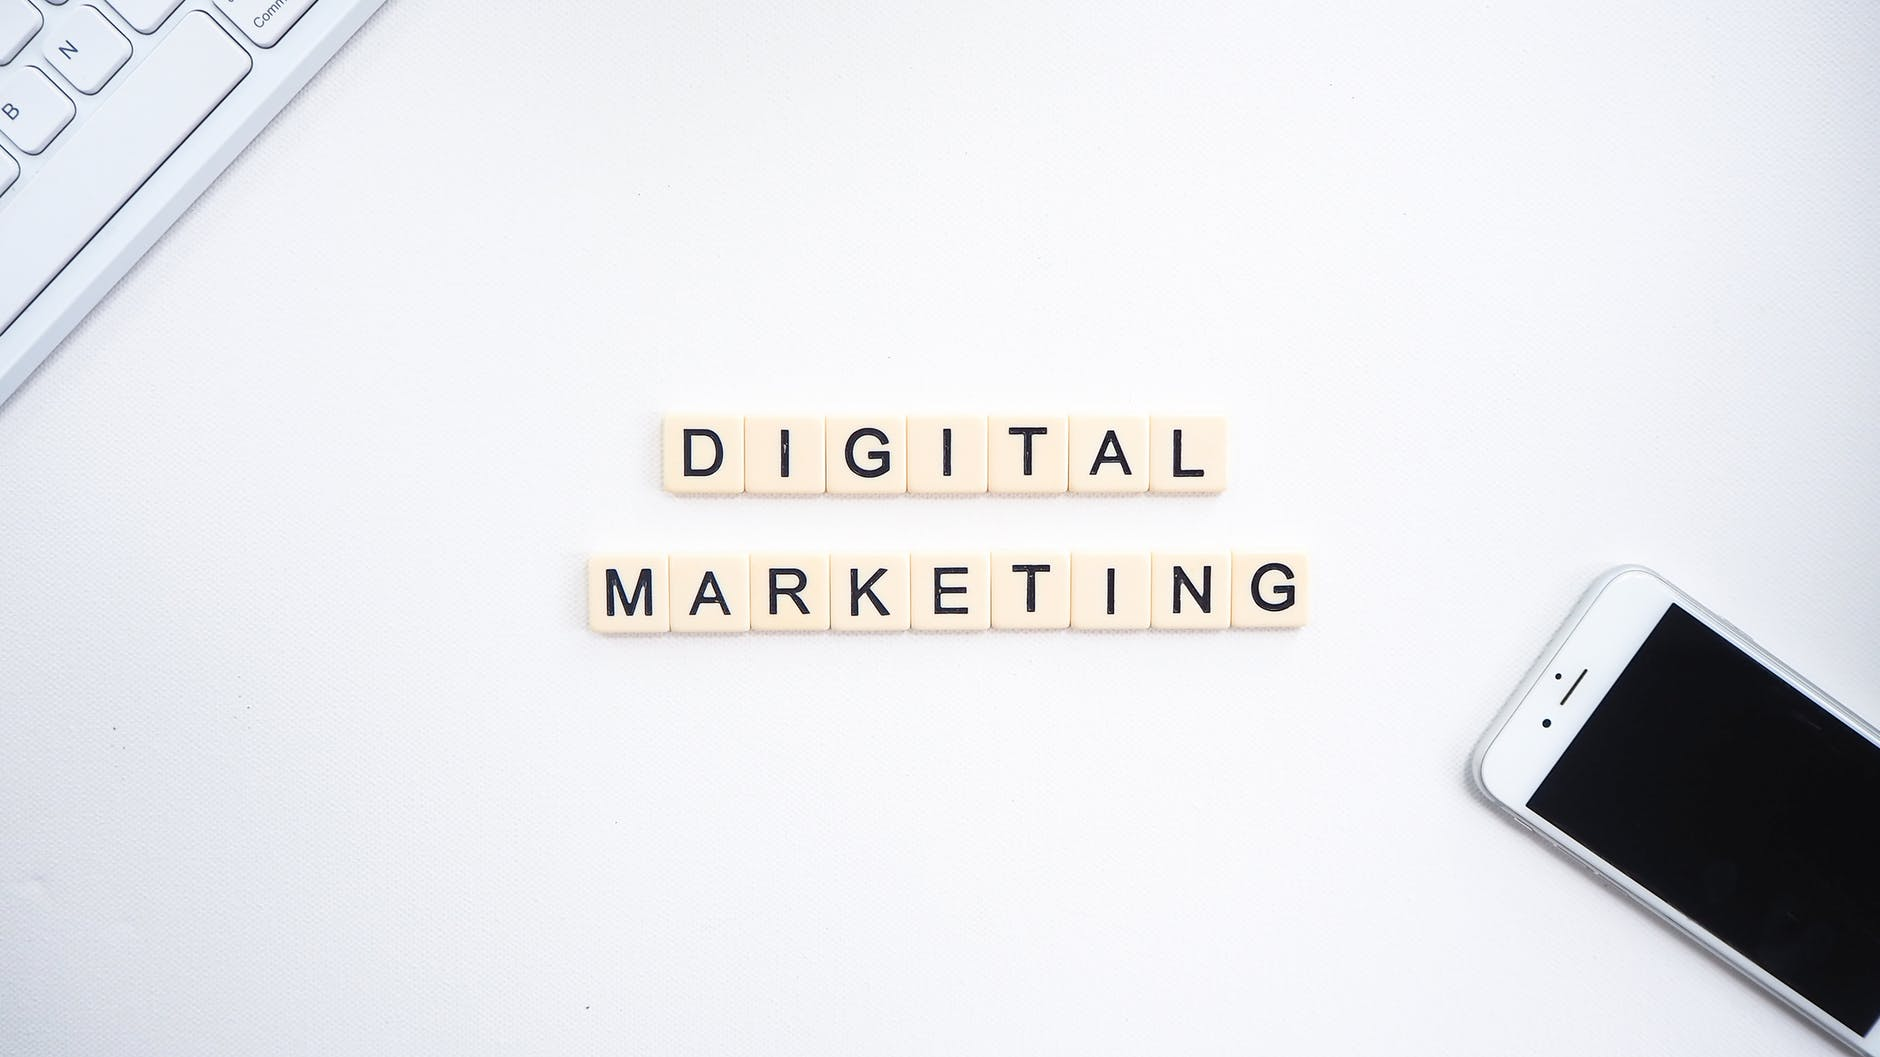 Digital Marketing Services to Fuel Your Business to Greatness